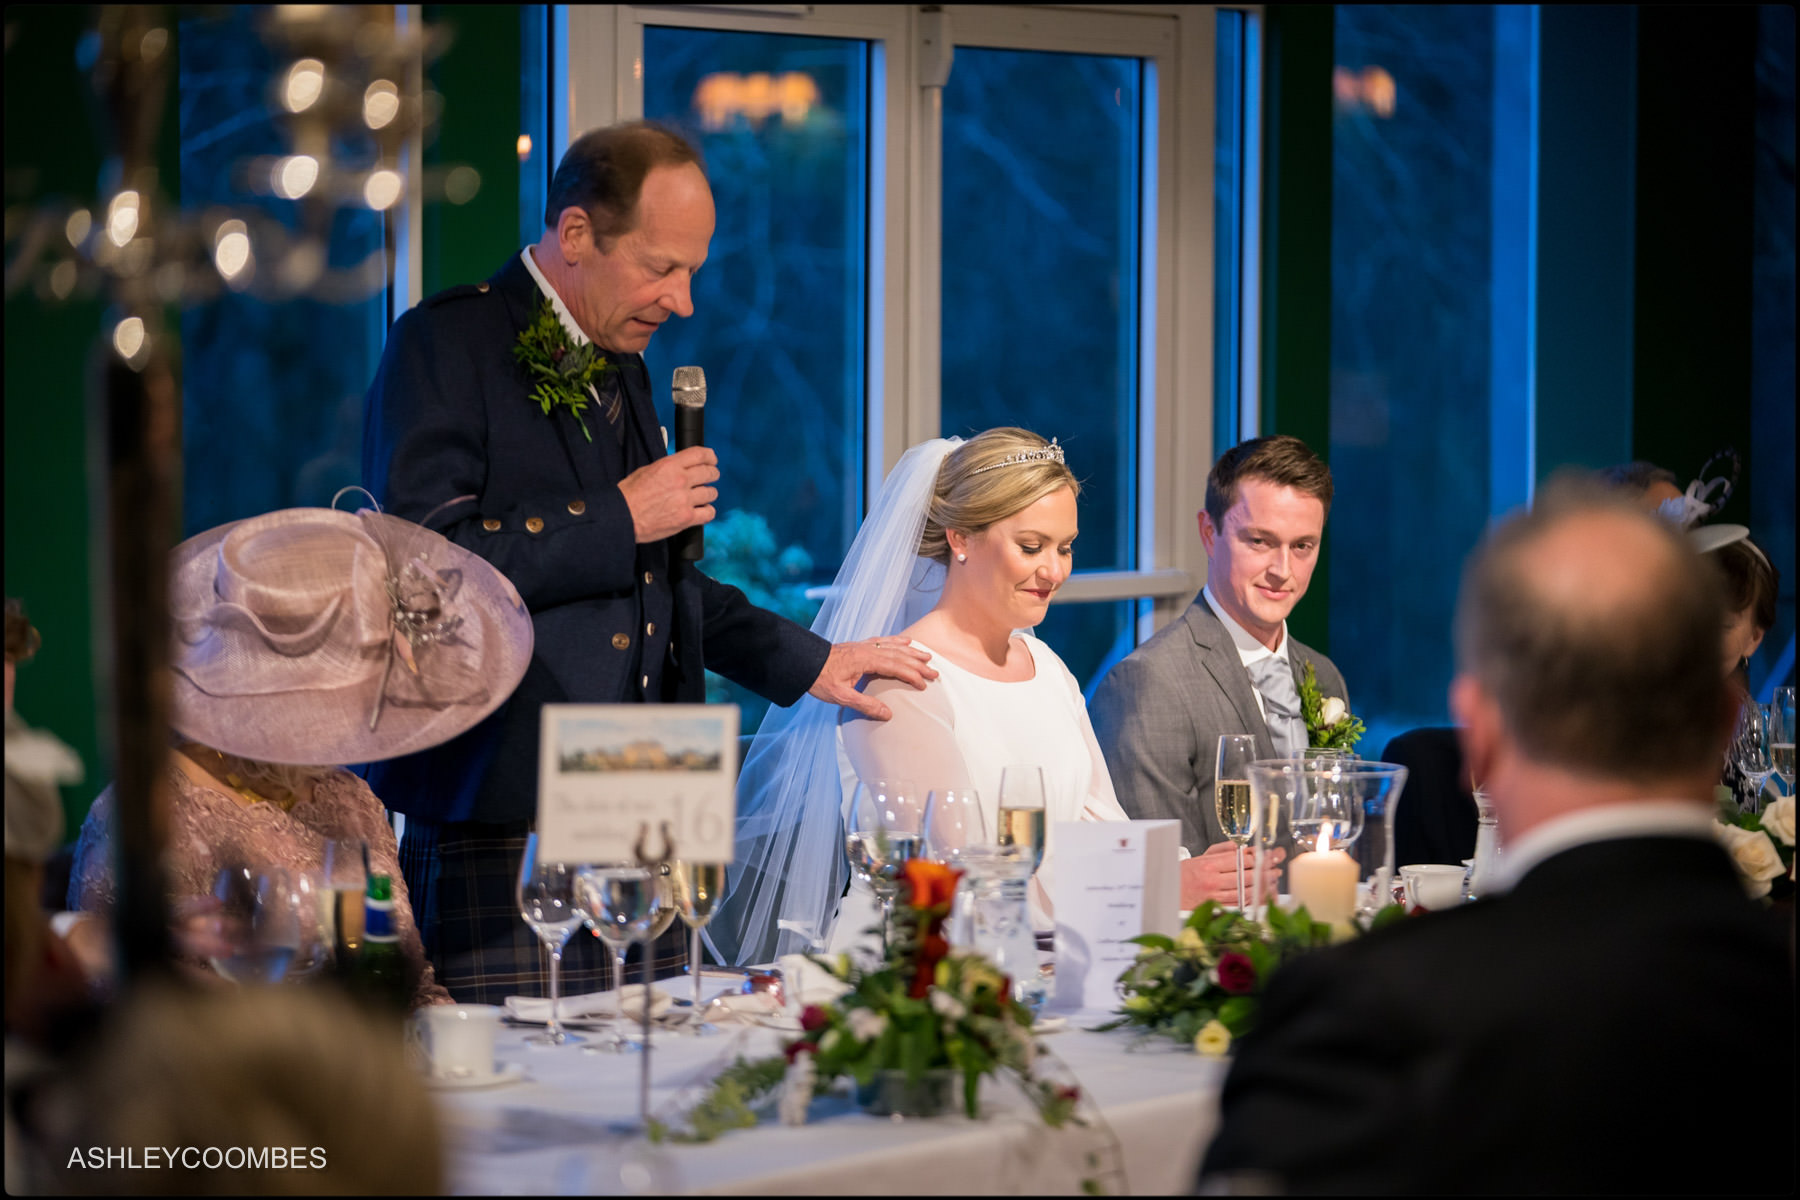 dad touches bride's shoulder during speech